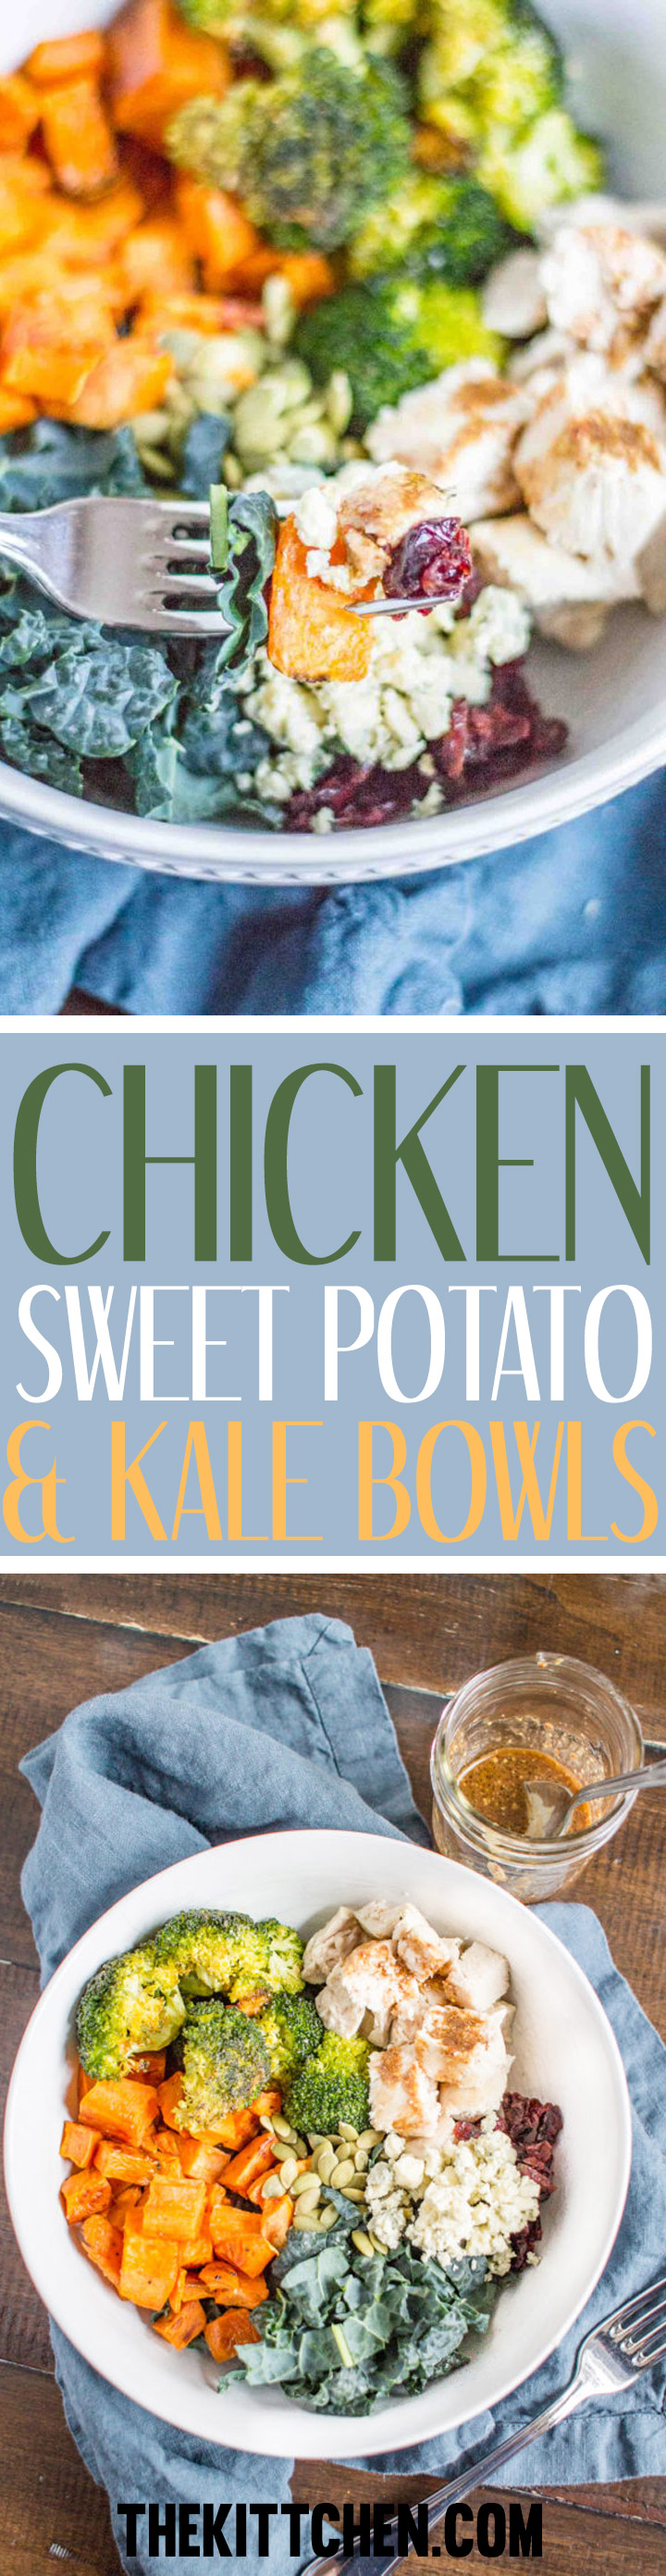 Healthy meals don't have to be boring. These Chicken, Sweet Potato, and Kale Bowls are loaded with flavorful roasted veggies and topped with a quick homemade mustard dressing. This is a healthy meal that I look forward to.